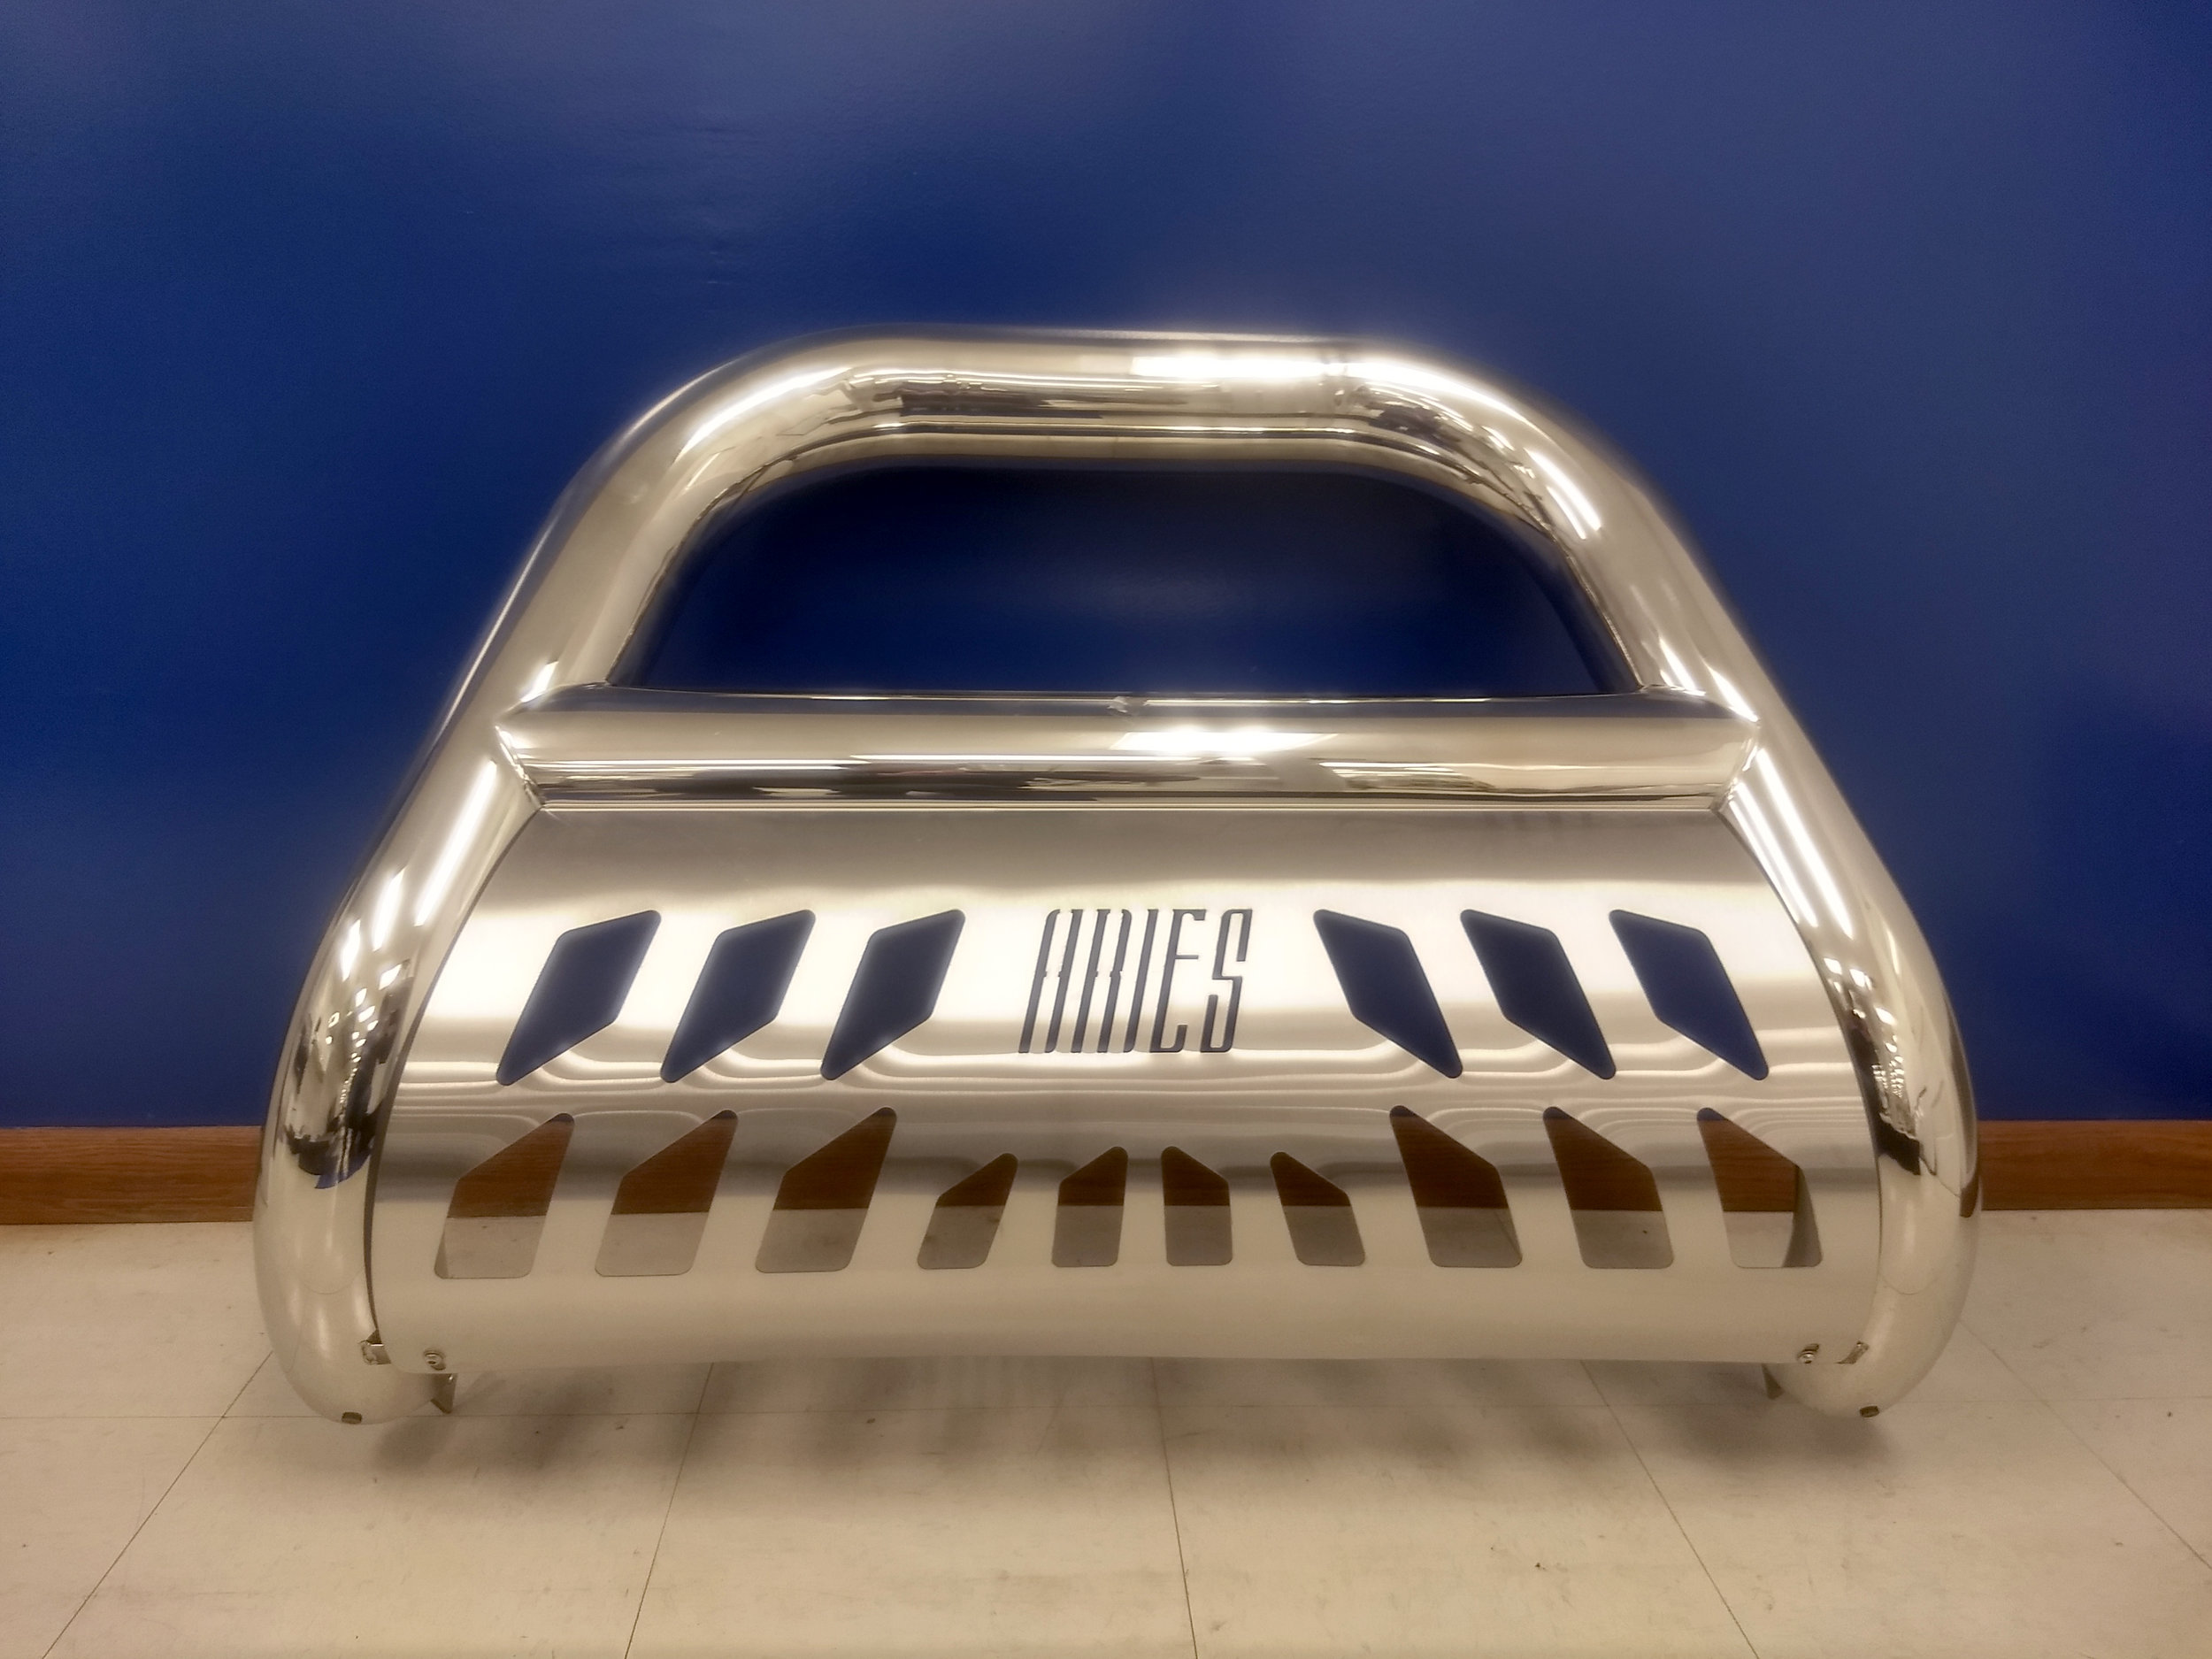 45-3007 - Aries grill guard for a 2004-2017 F150. Stainless steel with skid plate, showroom price $599.99